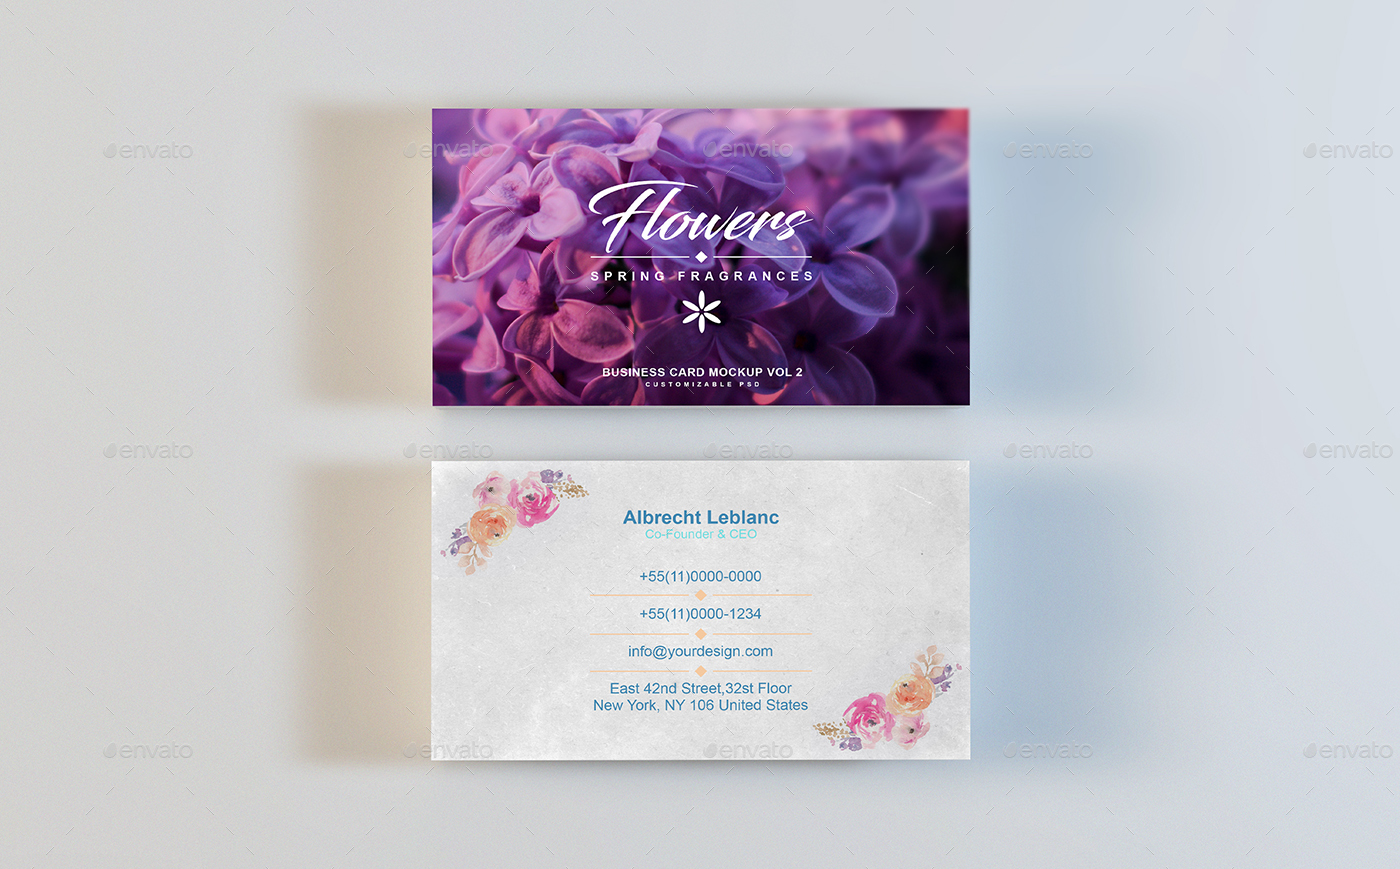 Business card mockup vol 2 by honnumgraphicart graphicriver business card mockup vol 2 3g colourmoves